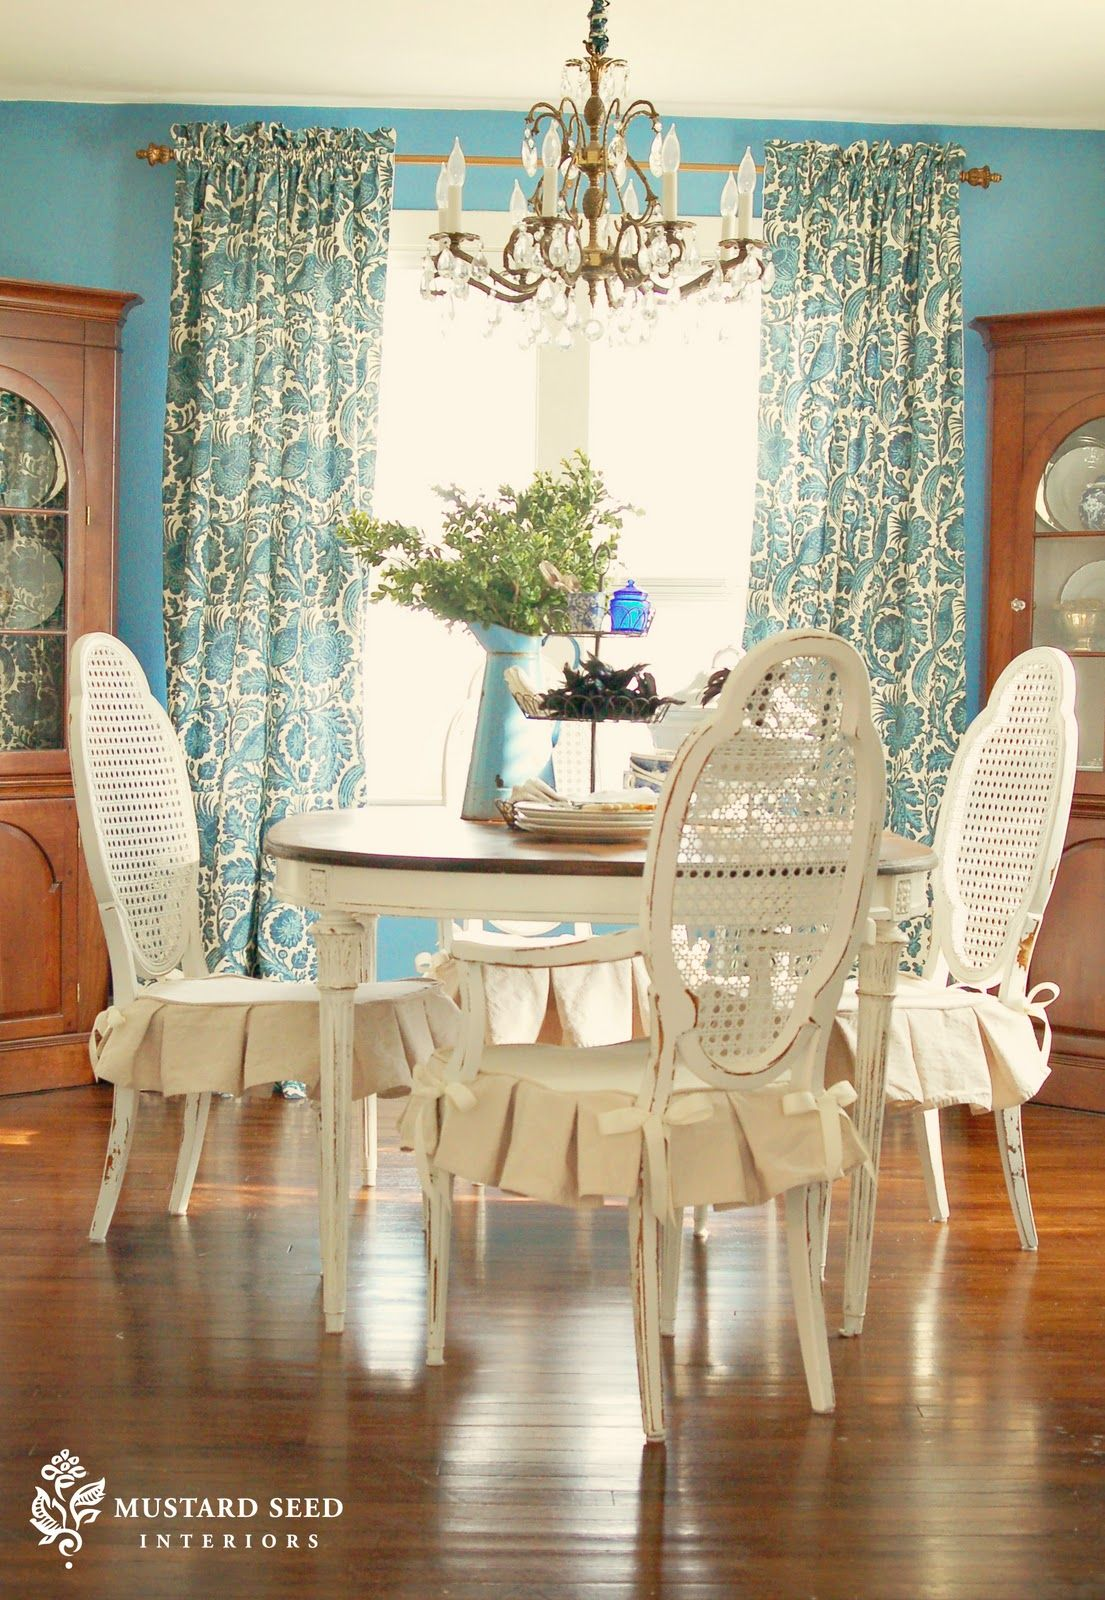 Miss Mustard Seed Dining Room/this Room Looks Even Better On The Website  With The Corner Cabinets Painted